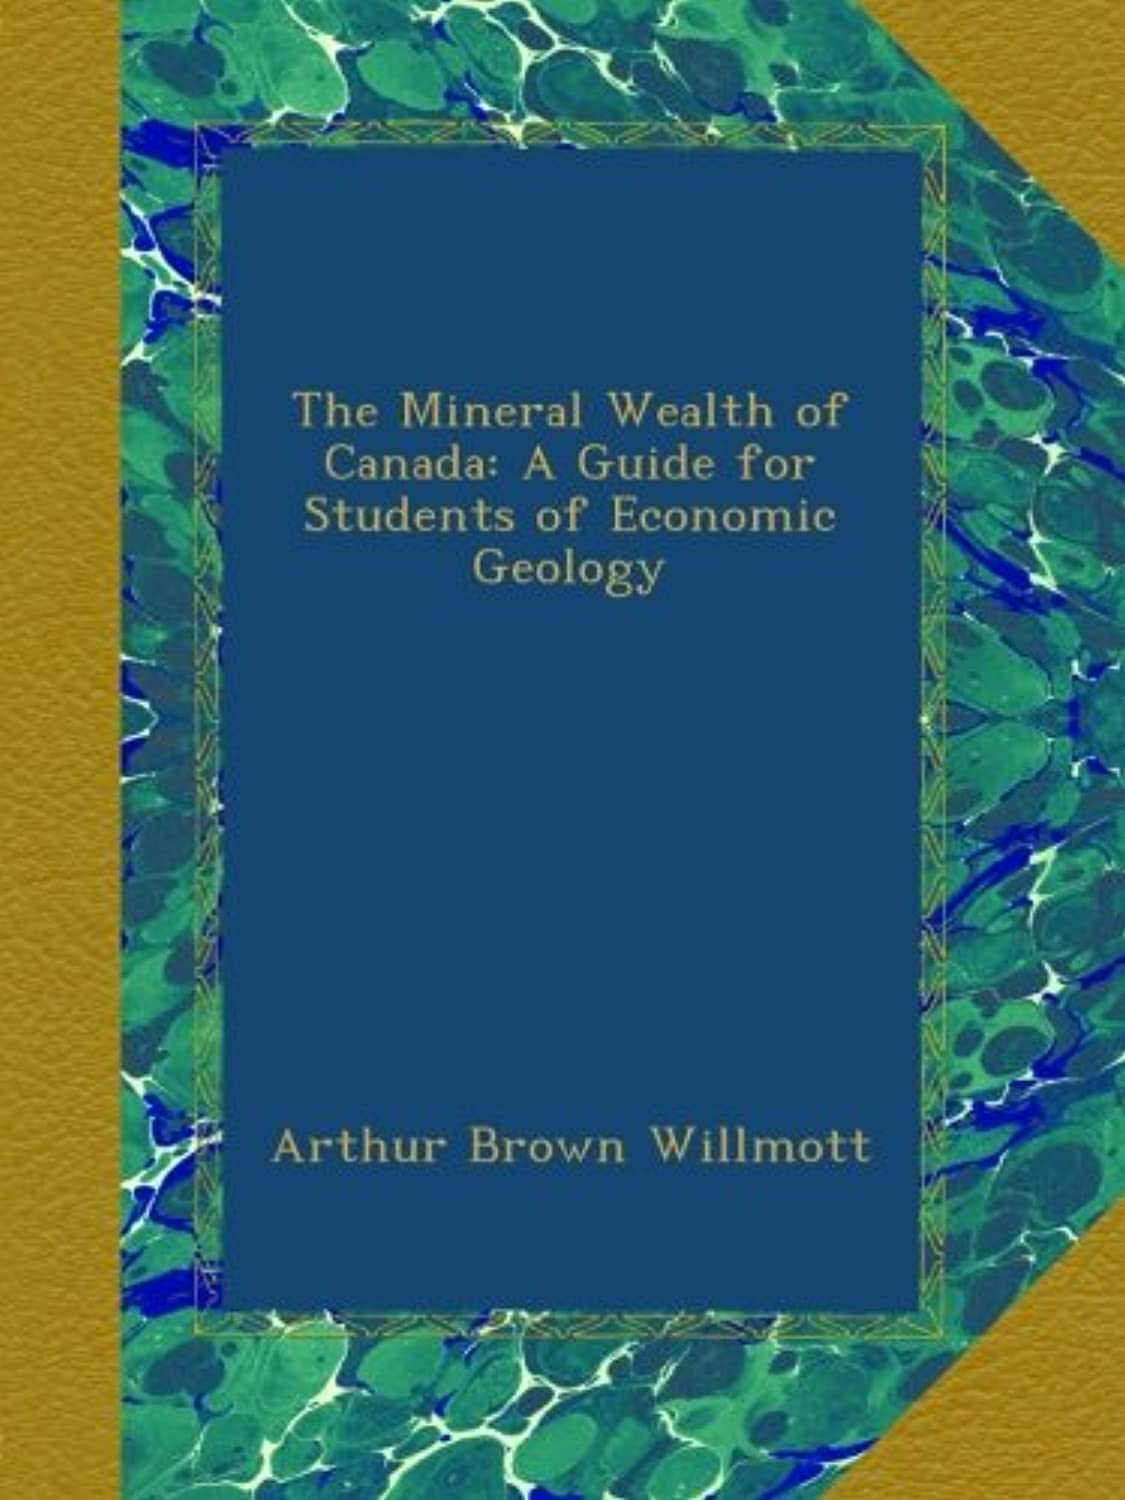 The Mineral Wealth of Canada: A Guide for Students of Economic Geology